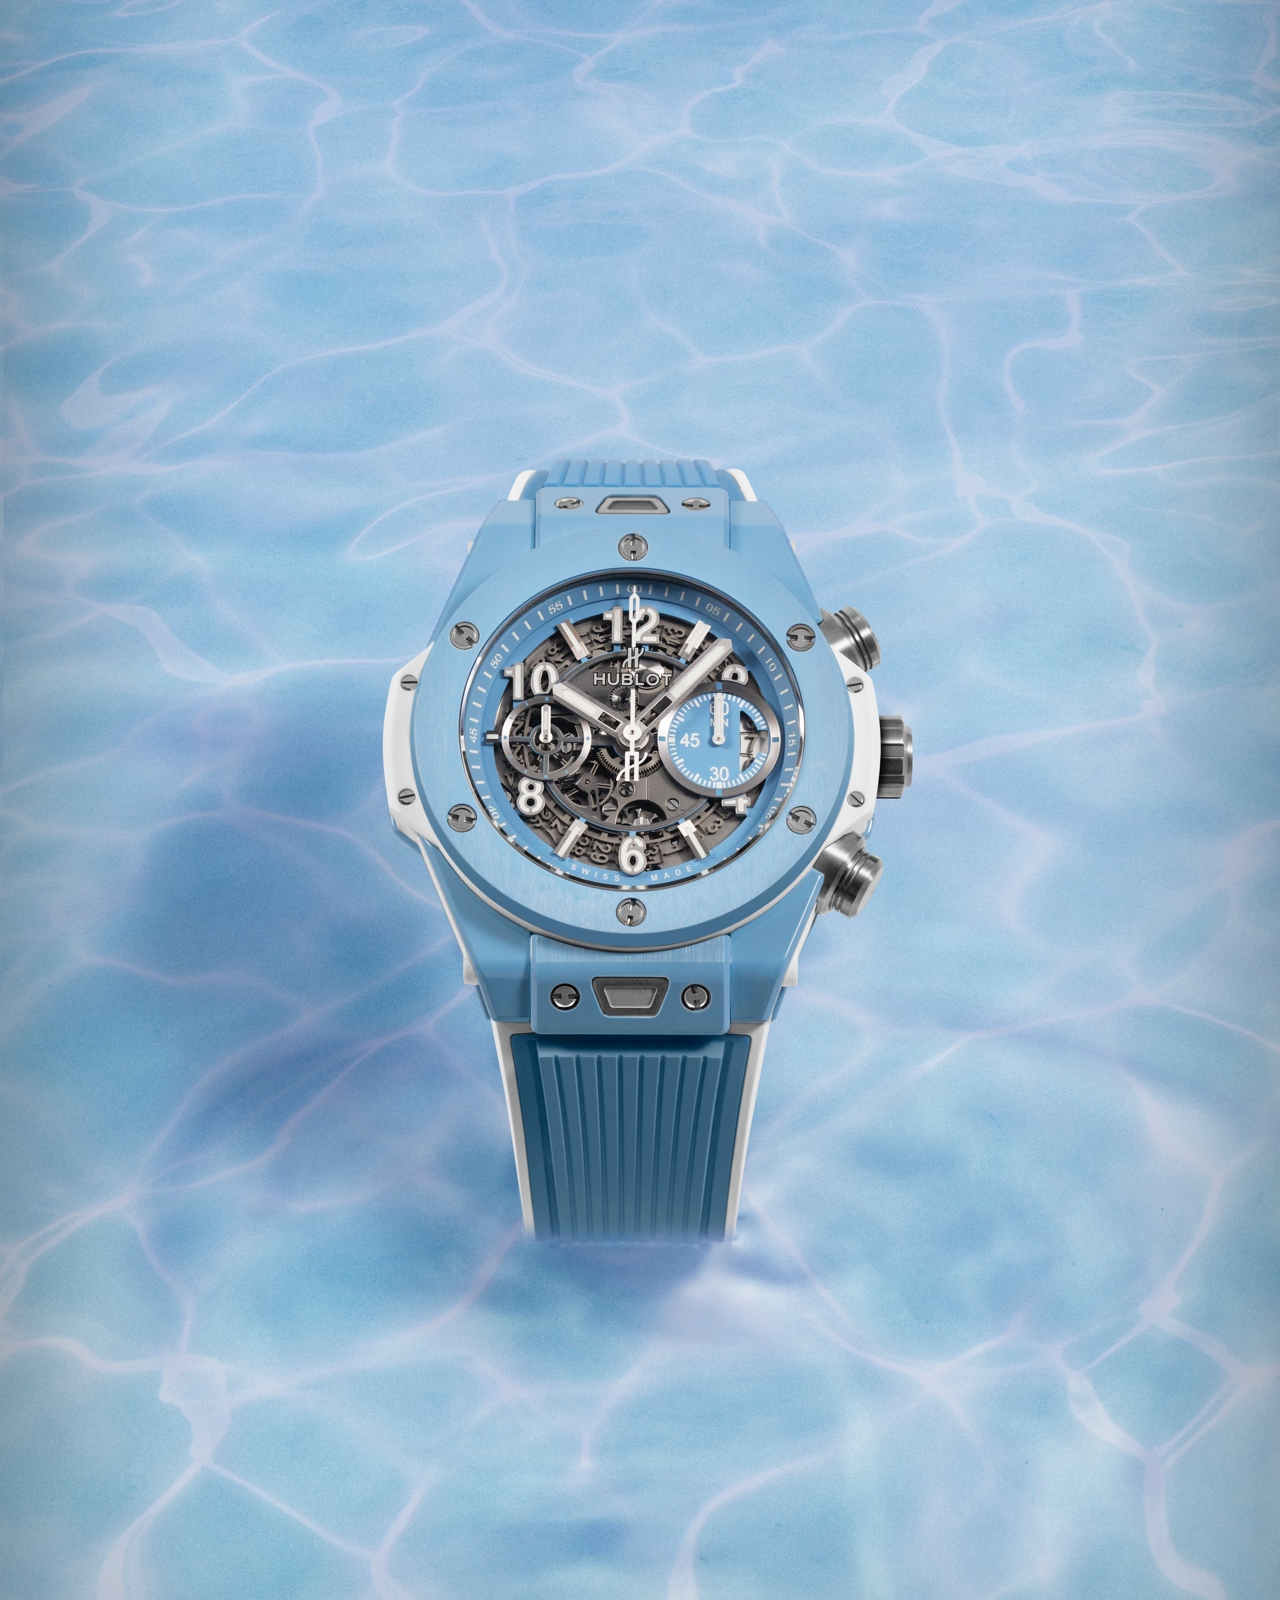 Hublot Big Bang Unico Sky Blue - water v